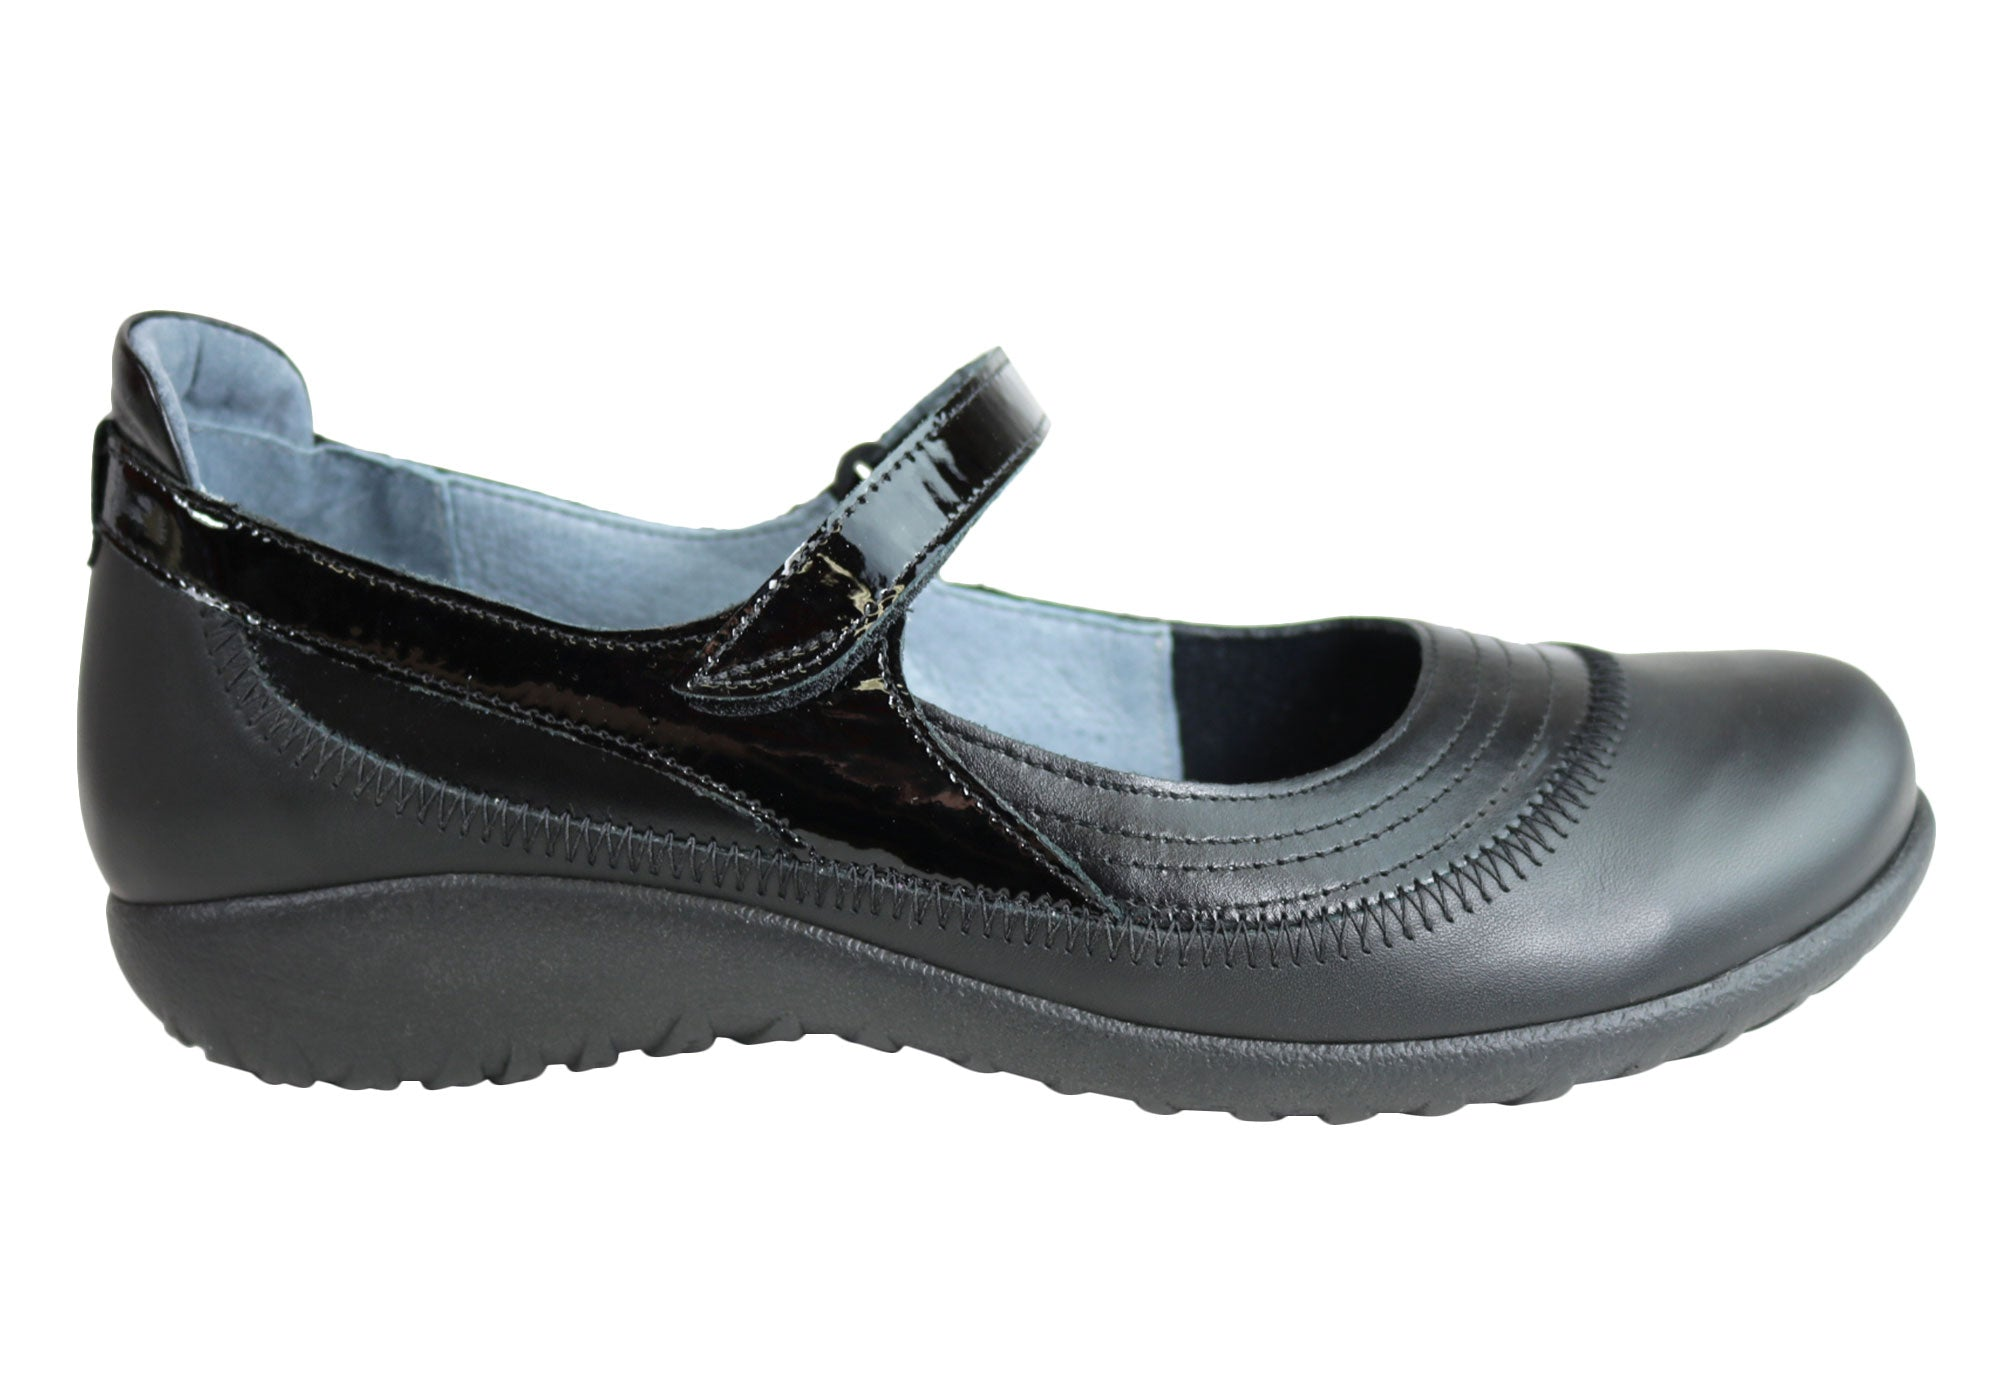 New Naot Kirei femmes Comfort Cushioned Orthotic Friendly Mary Jane chaussures